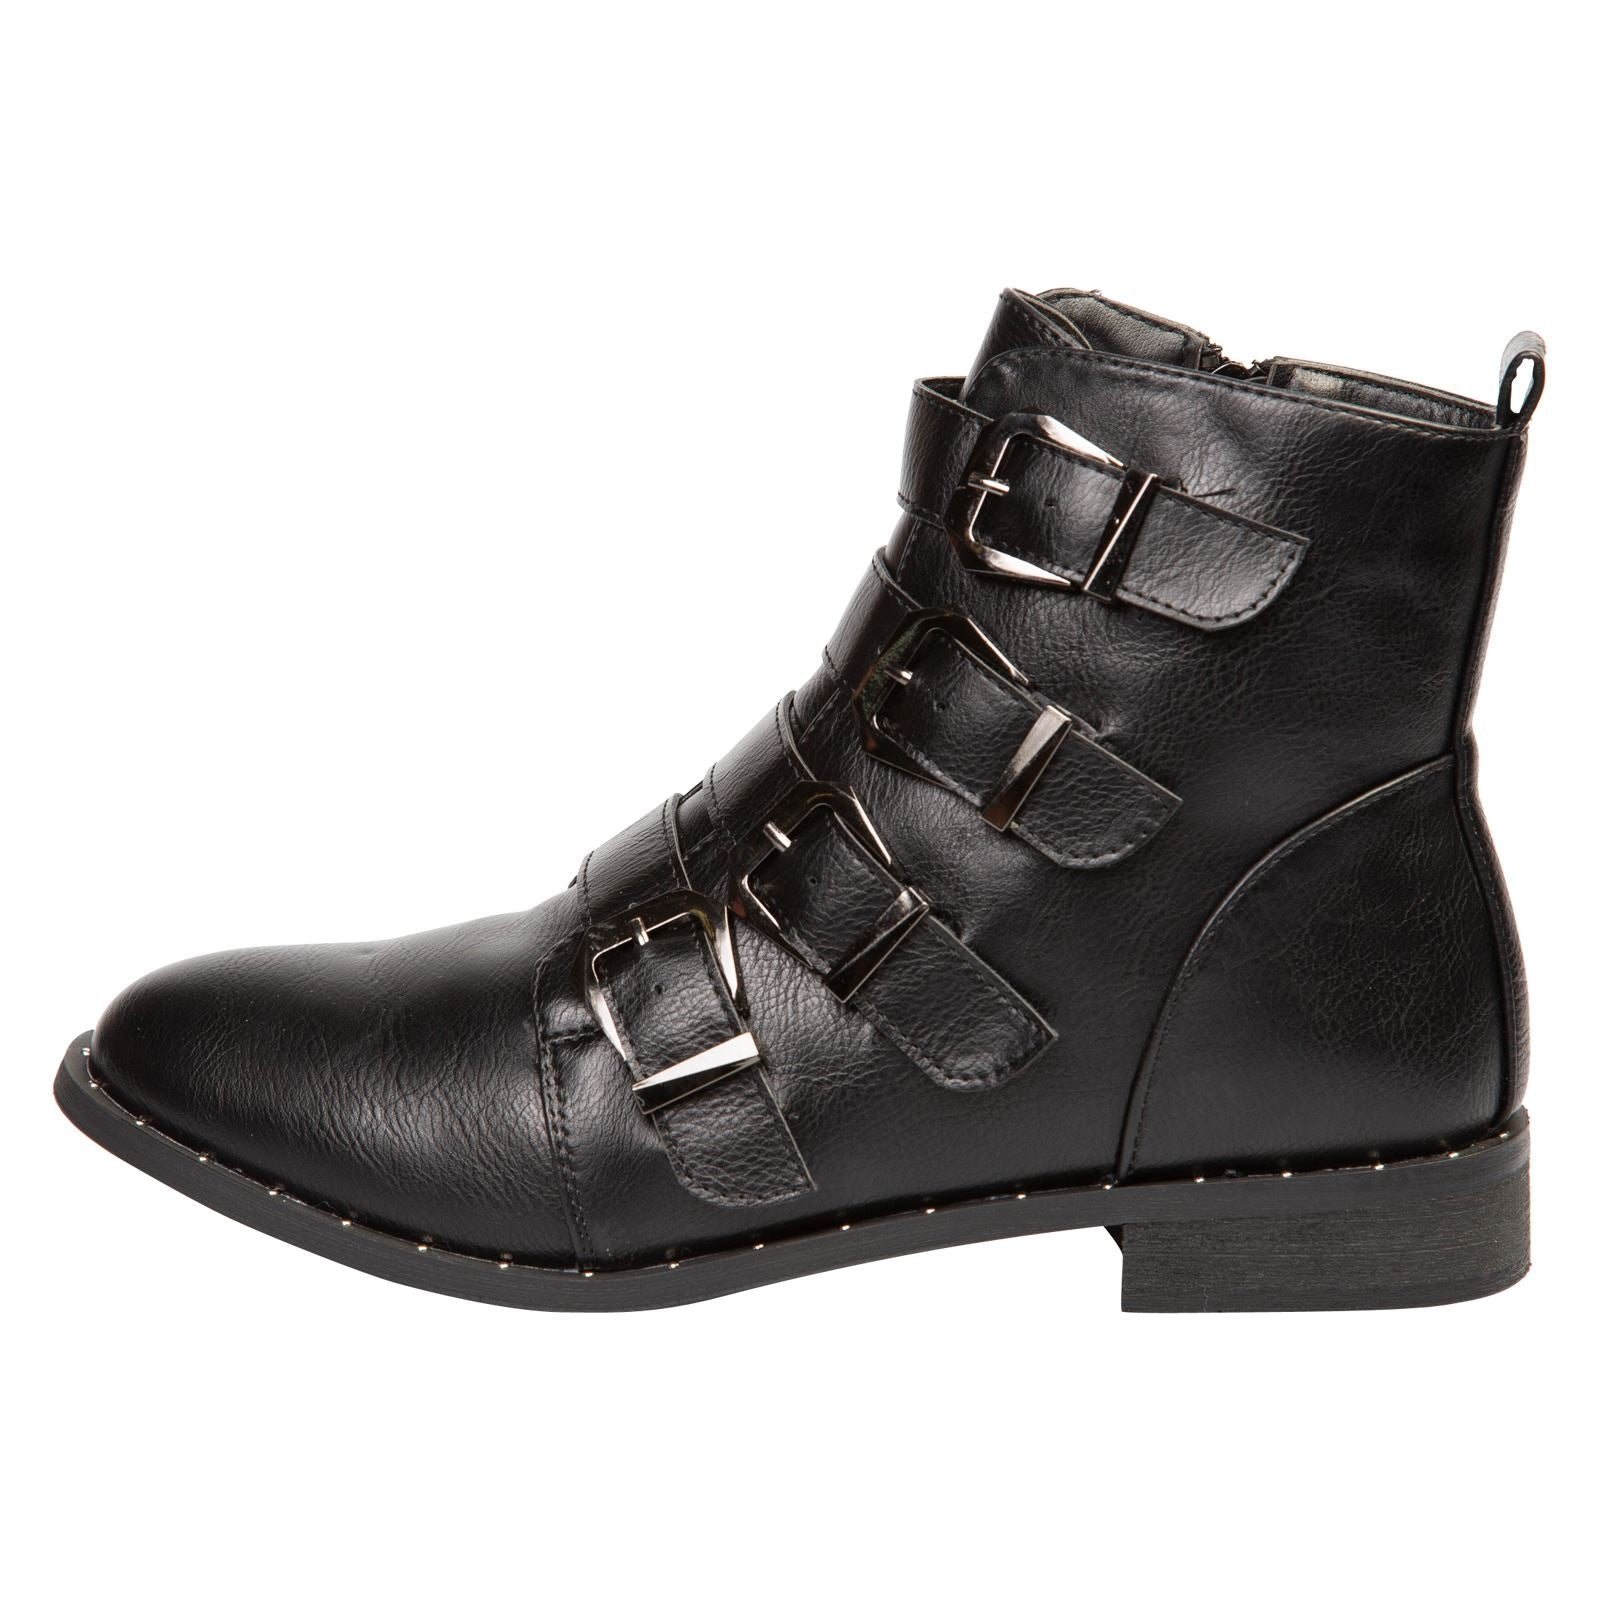 Harley Strappy Biker Boots in Black Faux Leather - Feet First Fashion